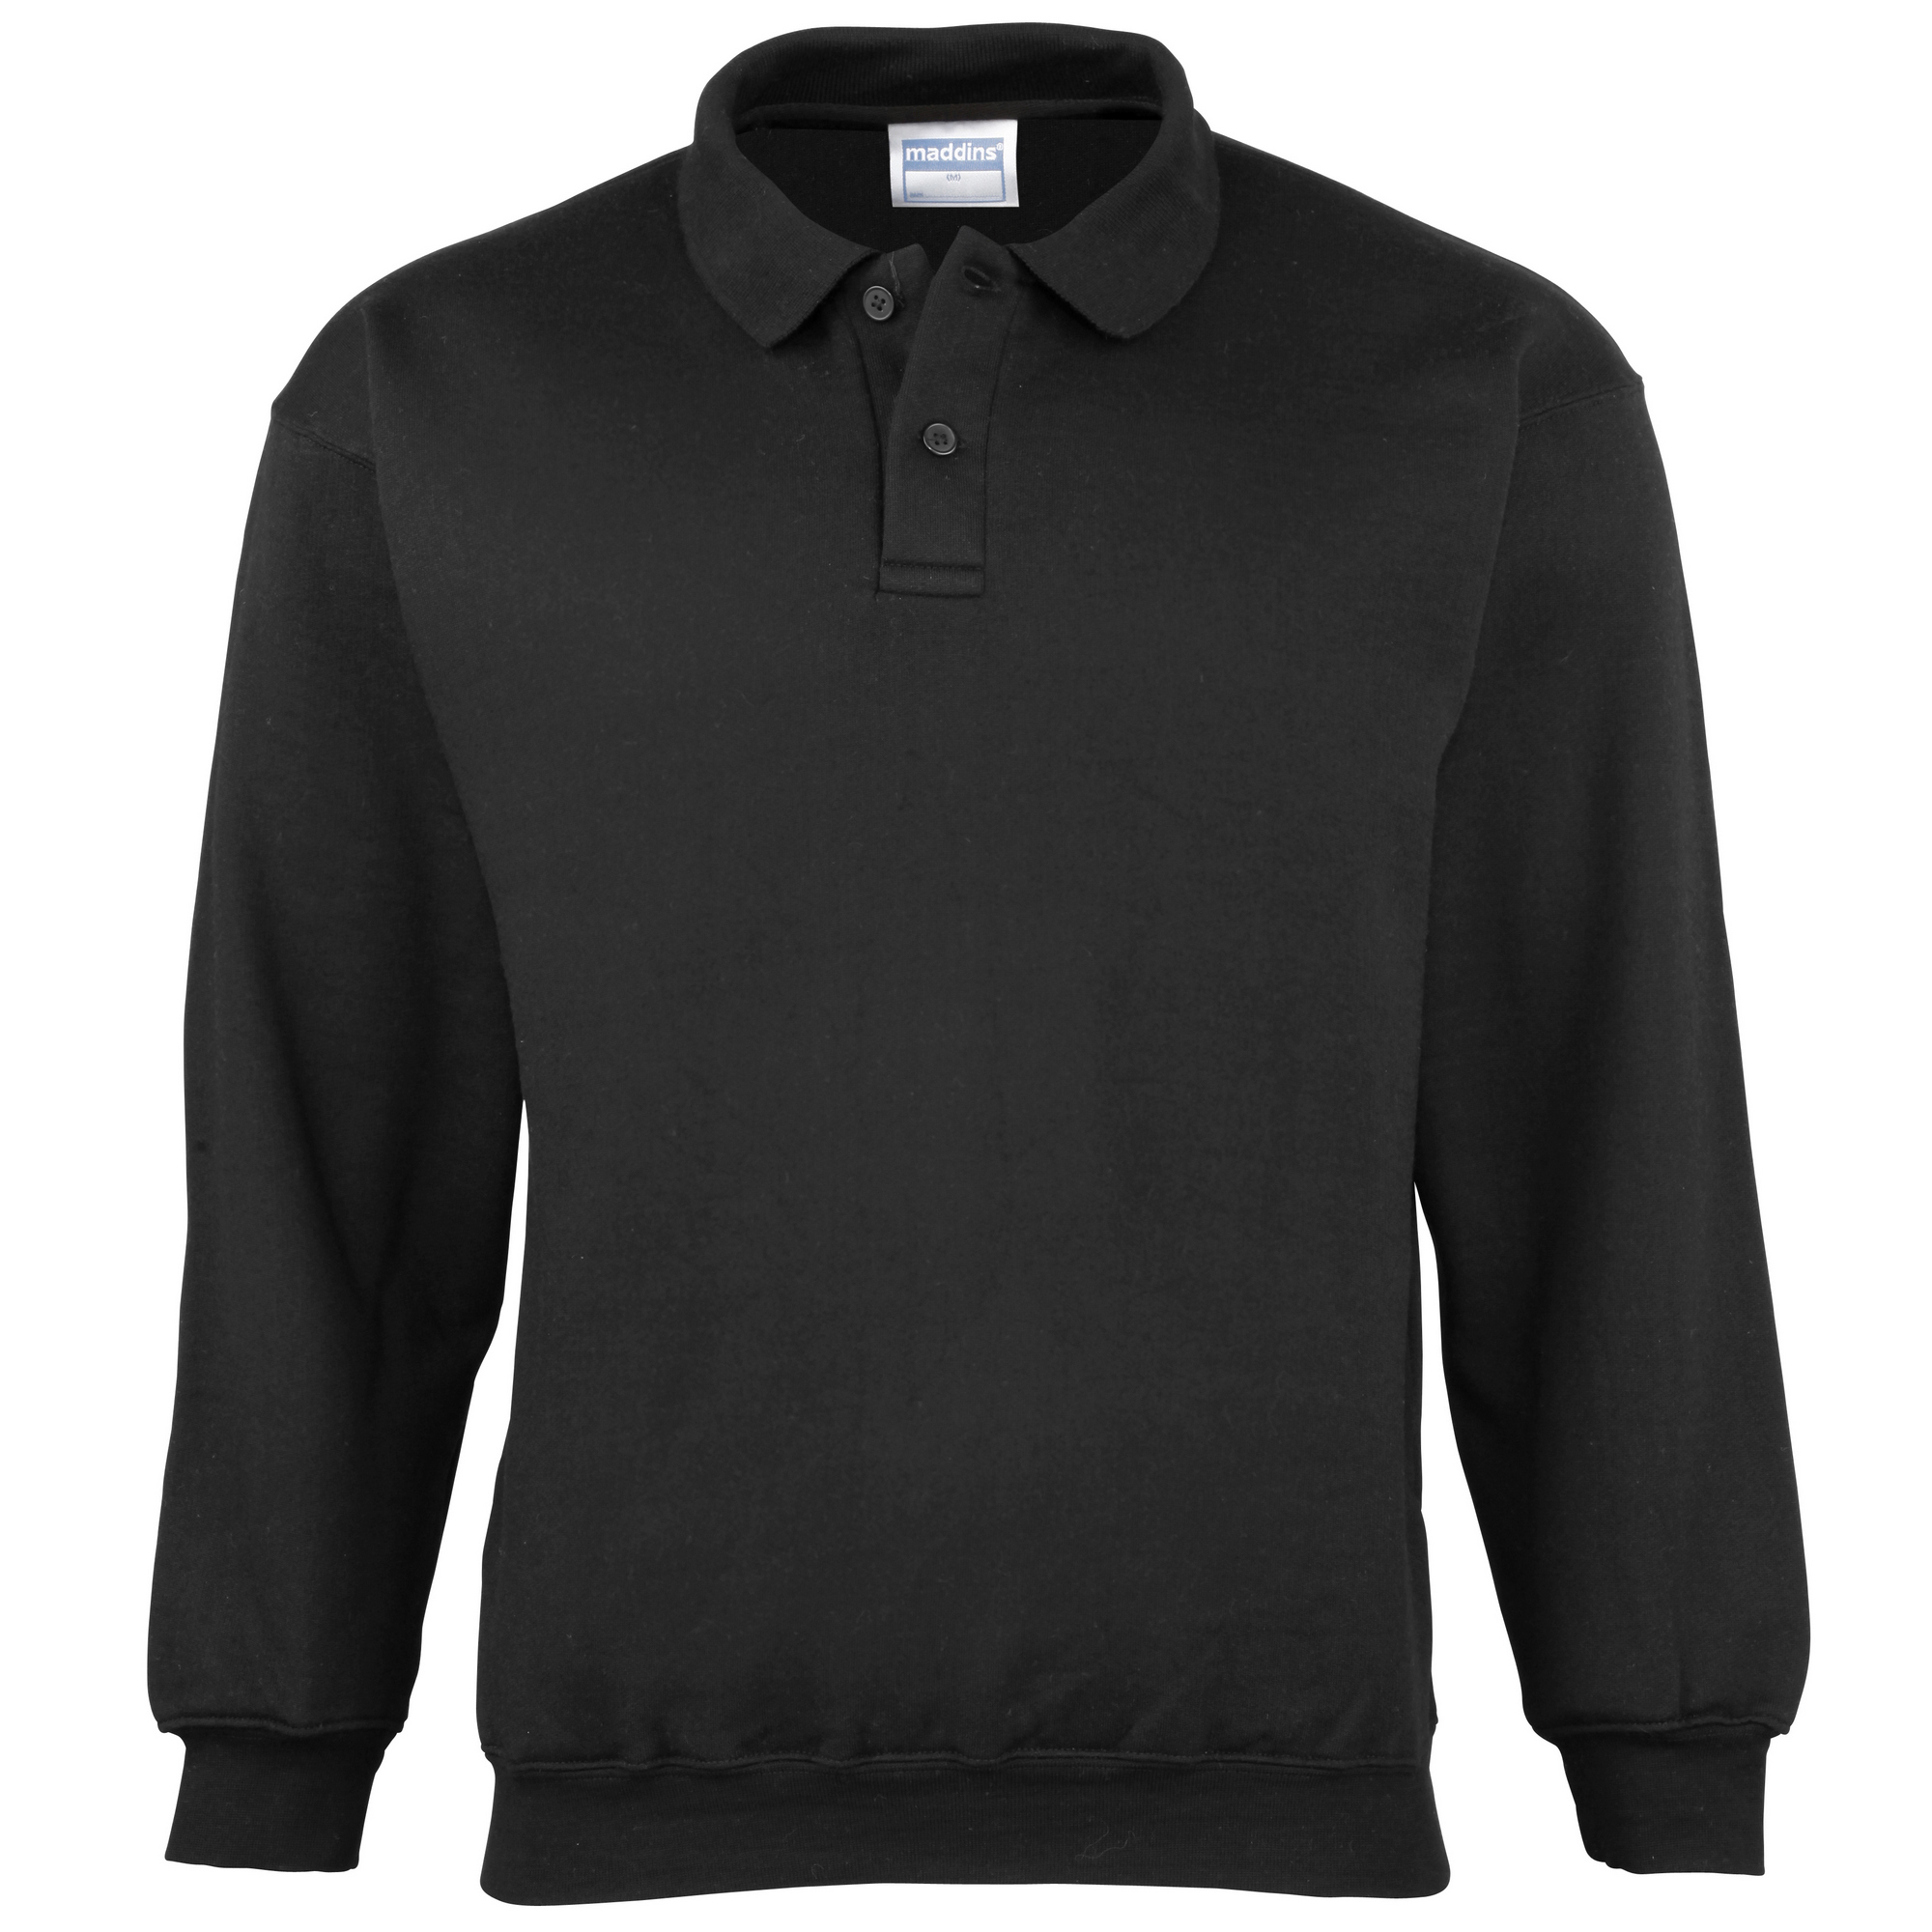 Maddins Mens Coloursure Polo Pisquet Sweatshirt Top (M) (Black)